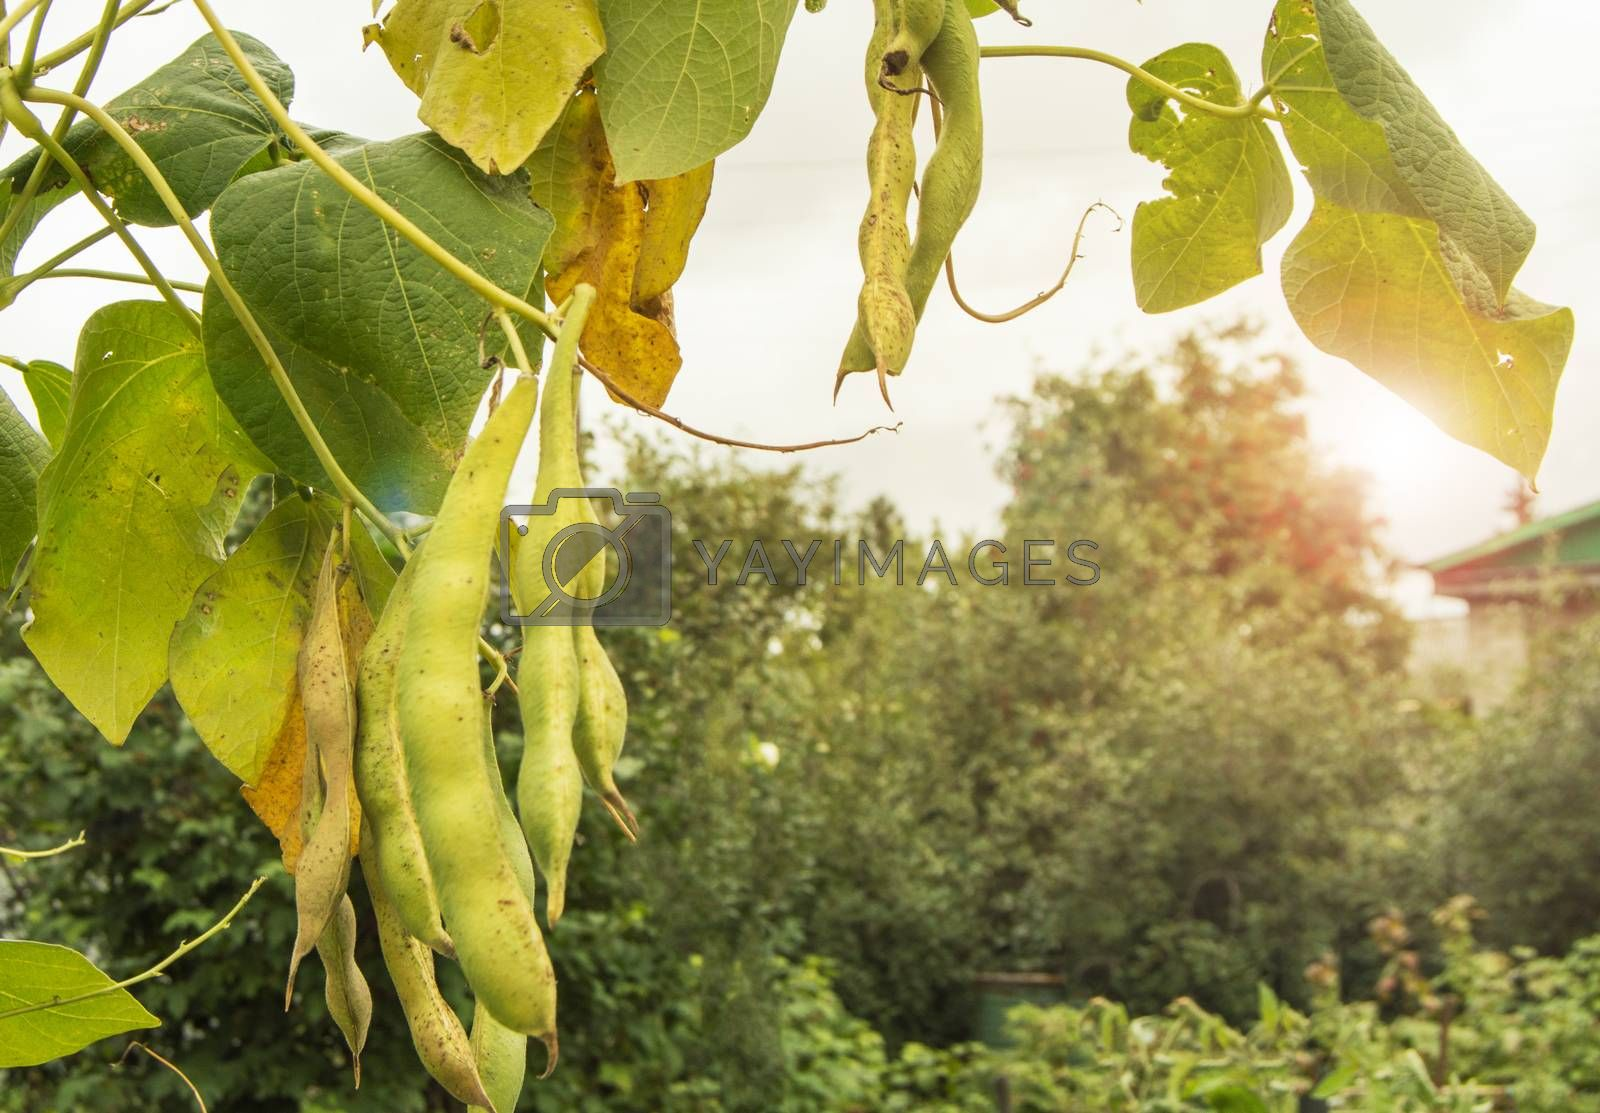 Bean plant with large pods on the background of a garden with trees and the sky on a Sunny summer day, the concept of agriculture.